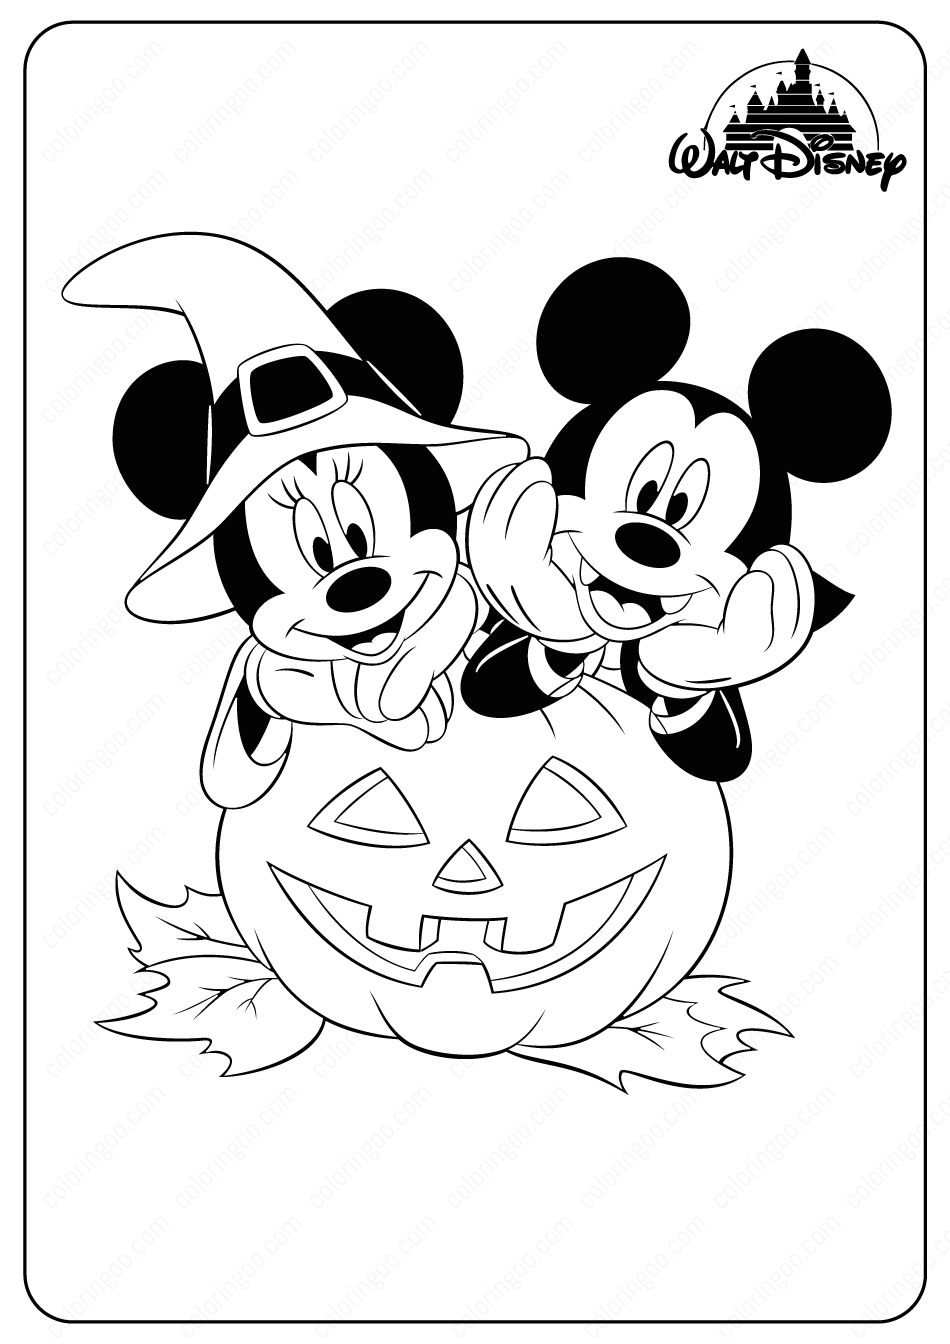 Minnie Mickey Halloween Coloring Pages In 2020 Halloween Coloring Book Mickey Mouse Coloring Pages Free Halloween Coloring Pages